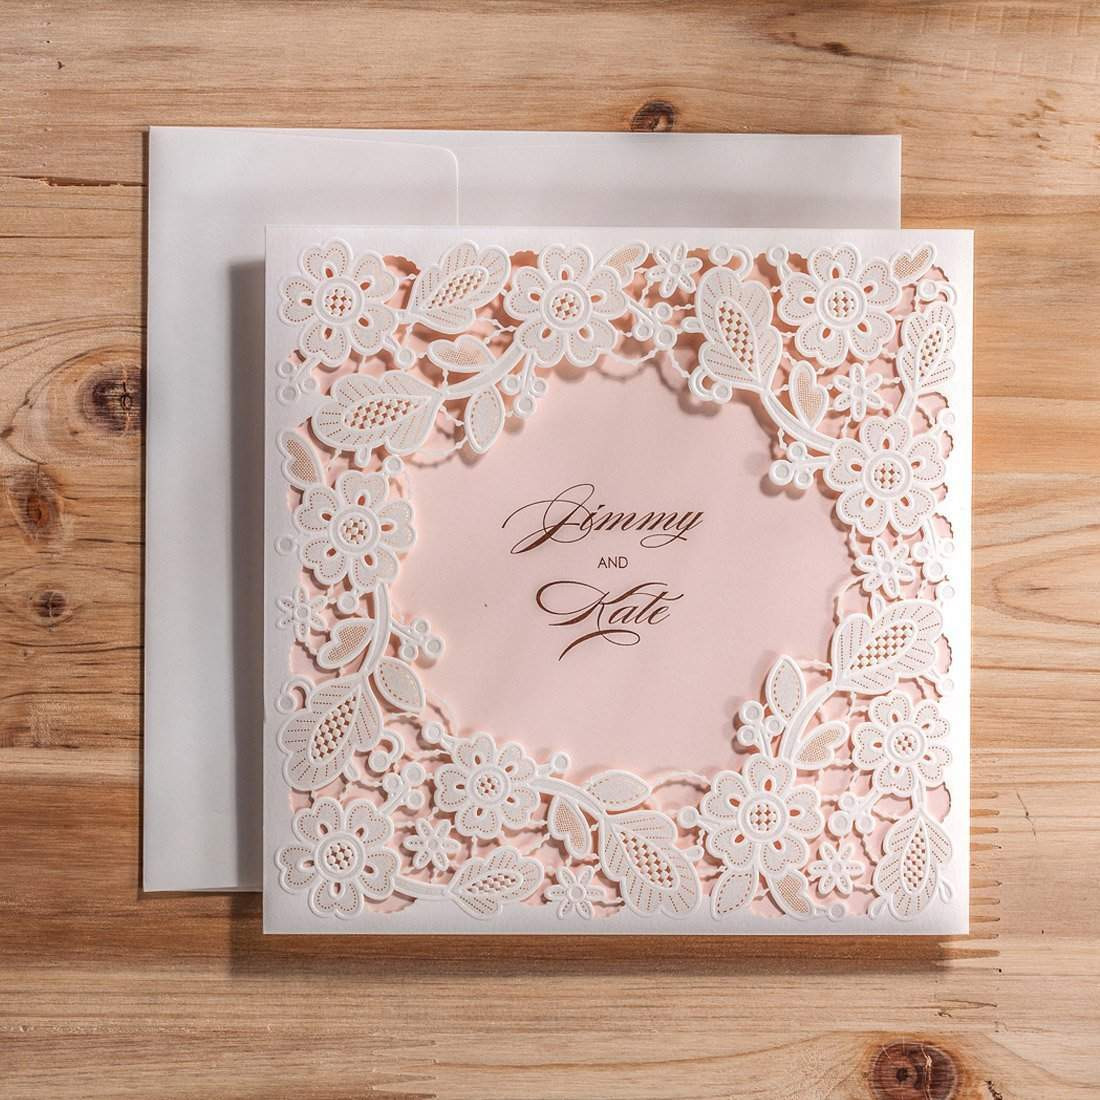 Best ideas about DIY Wedding Invites . Save or Pin Top 10 Best Cheap DIY Wedding Invitations Now.